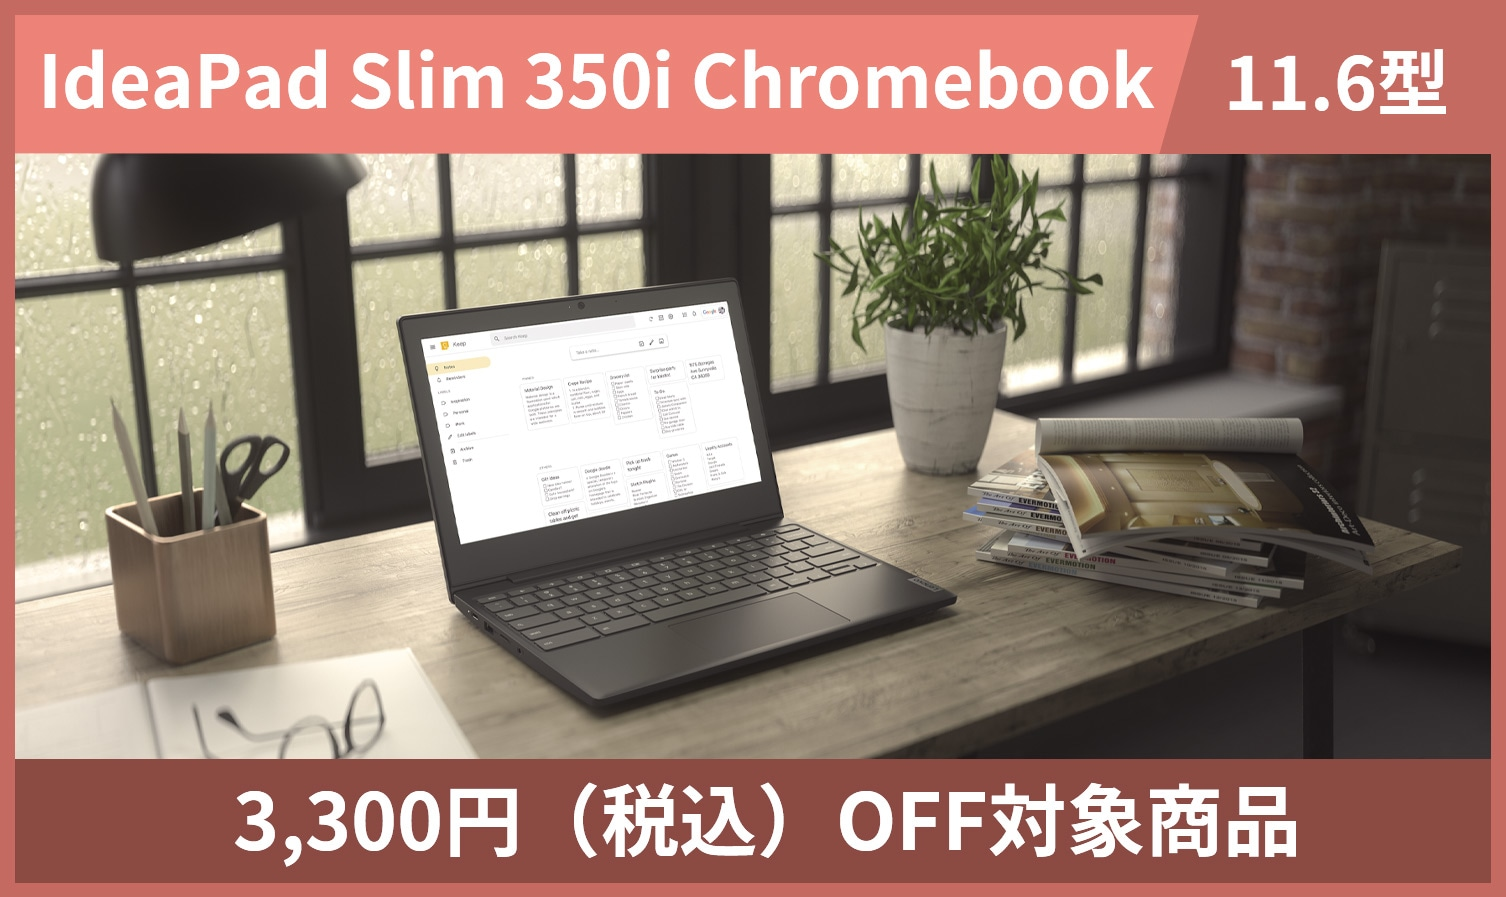 IdeaPad Silm 350i Chromebook